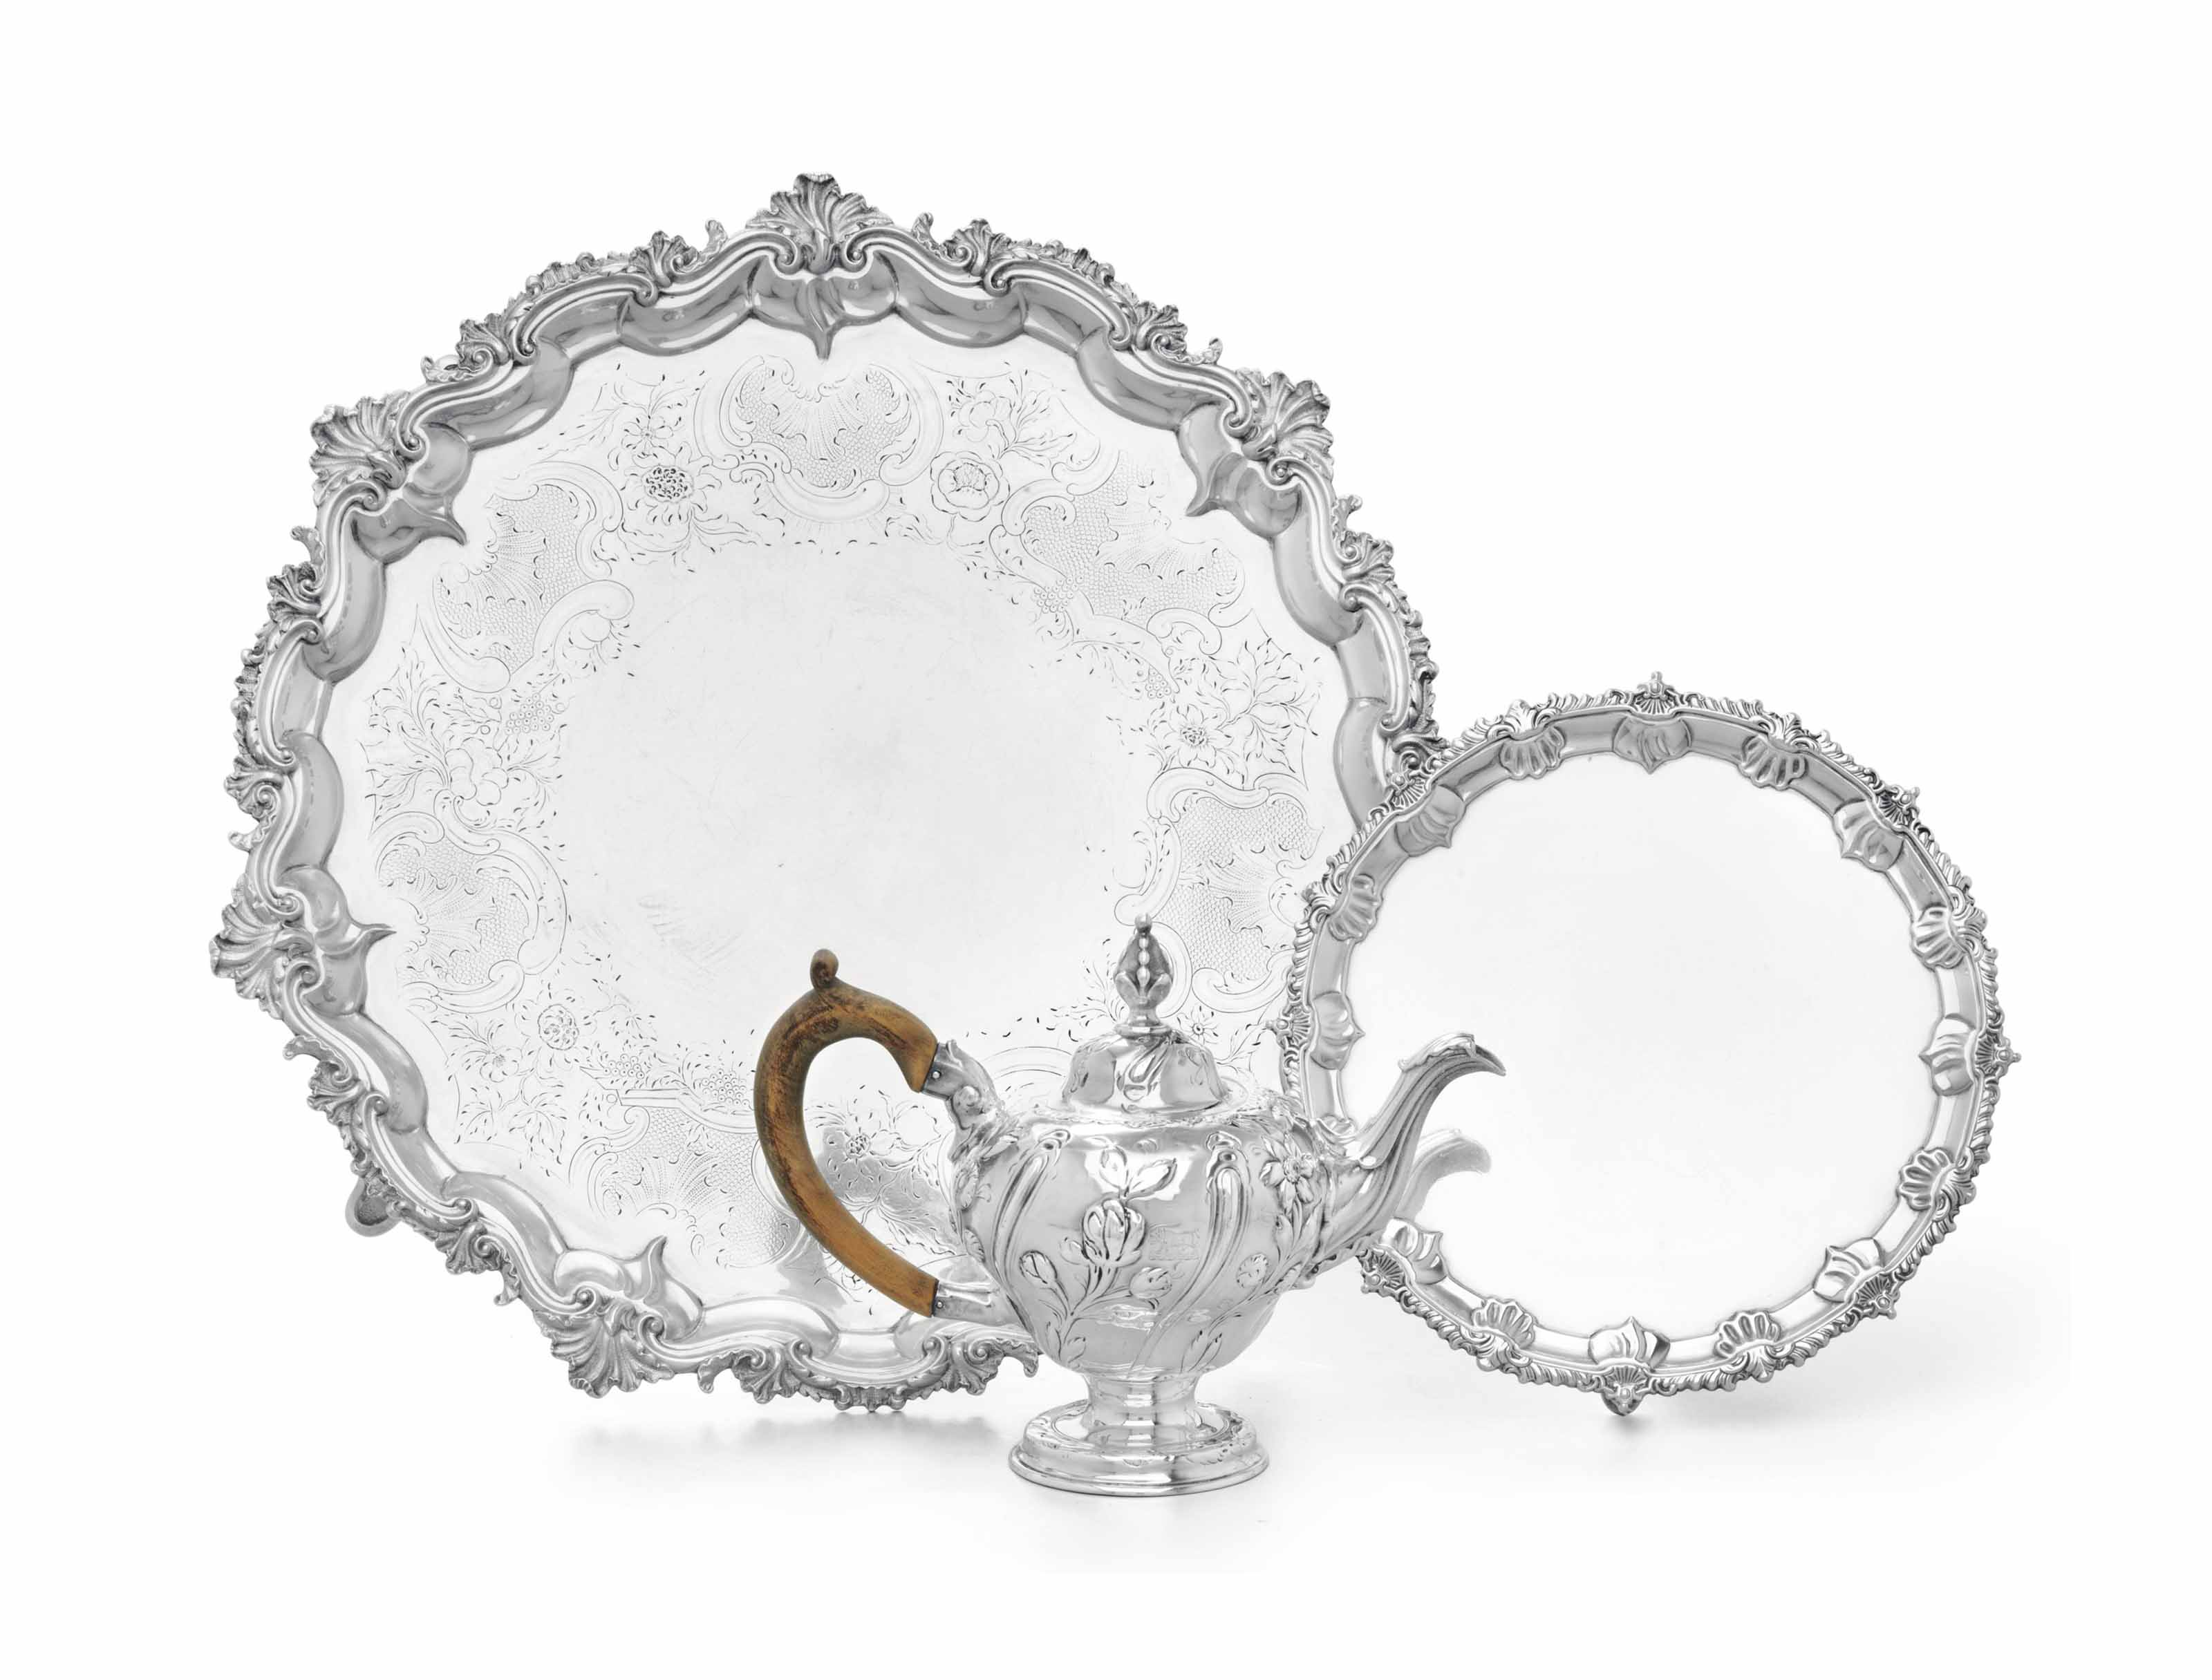 A GEORGE III SILVER TEAPOT, WAITER, AND SALVER